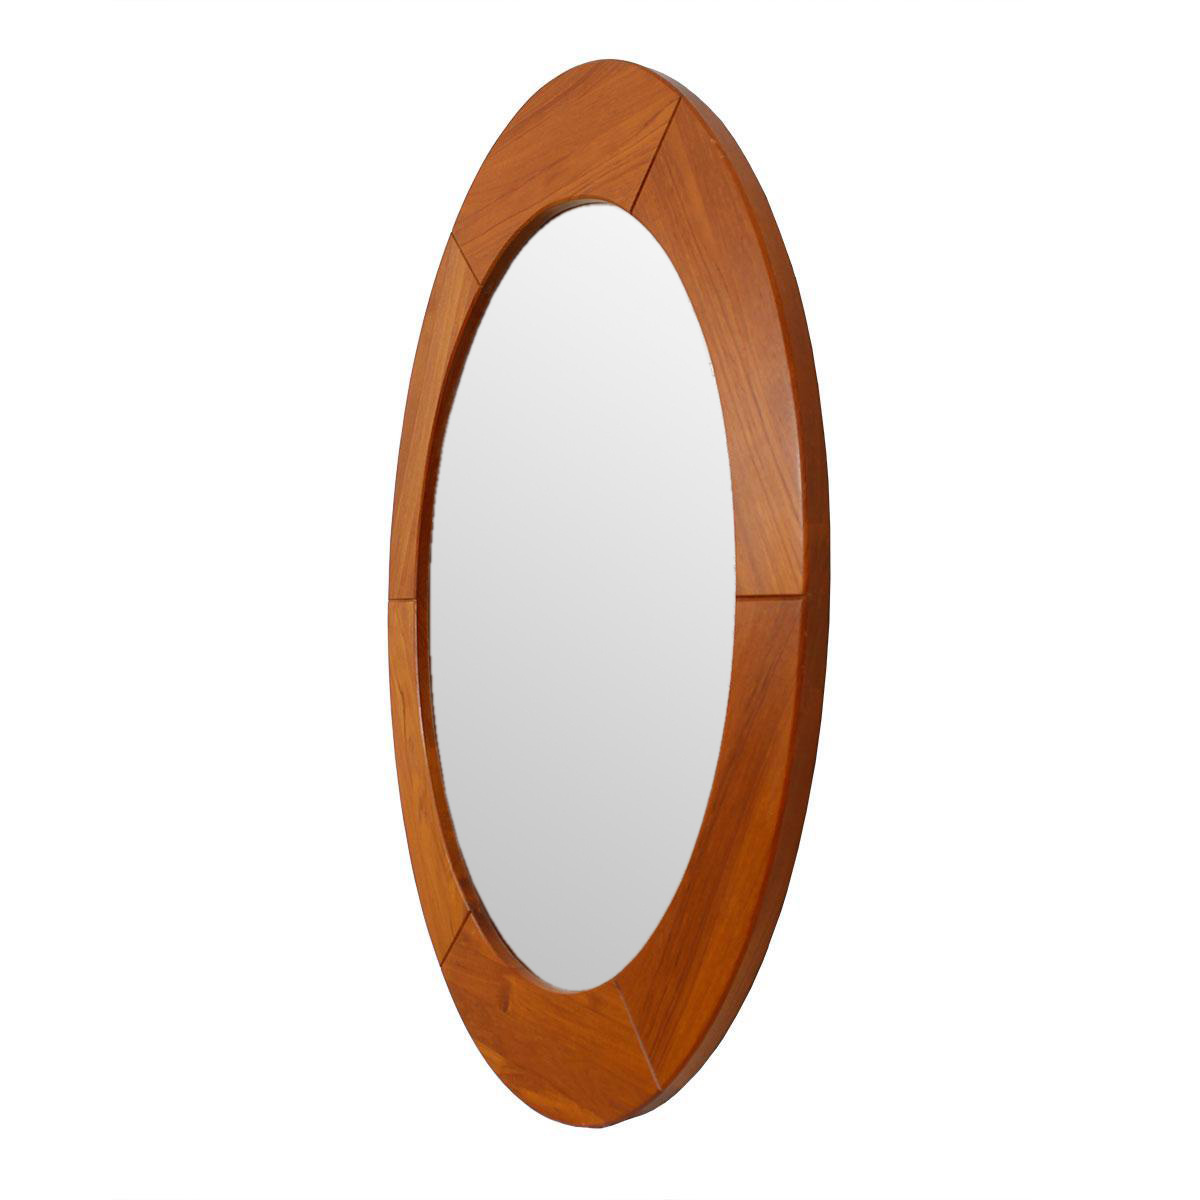 Pedersen Amp Hansen Large Oval Teak Mirror Chairish